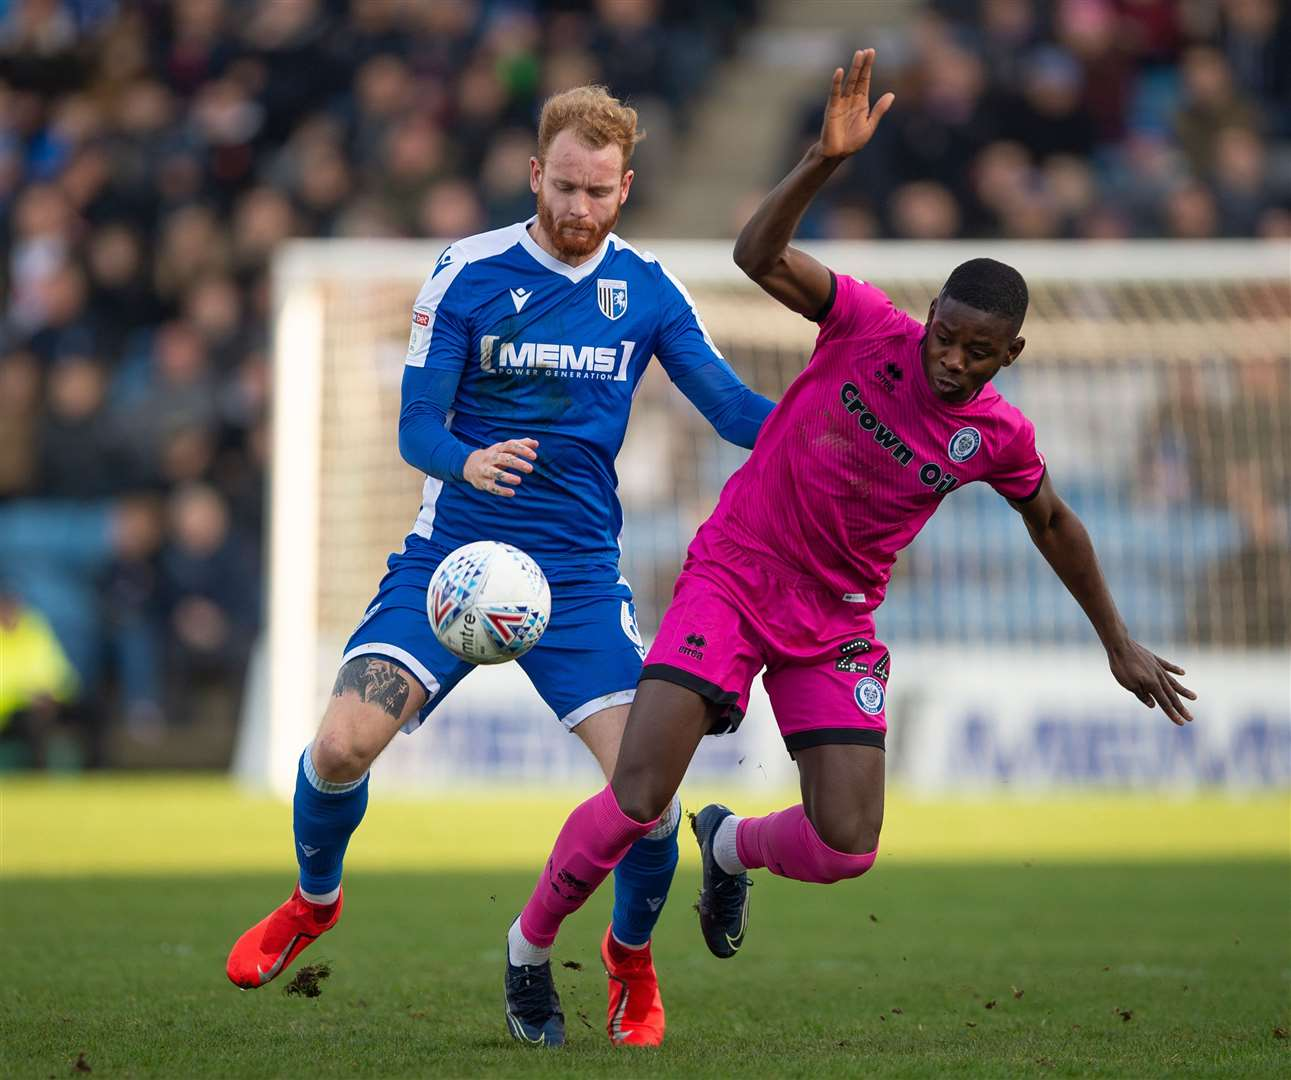 Connor Ogilvie challenges with Rochdale's Kwadwo Baah Picture: Ady Kerry